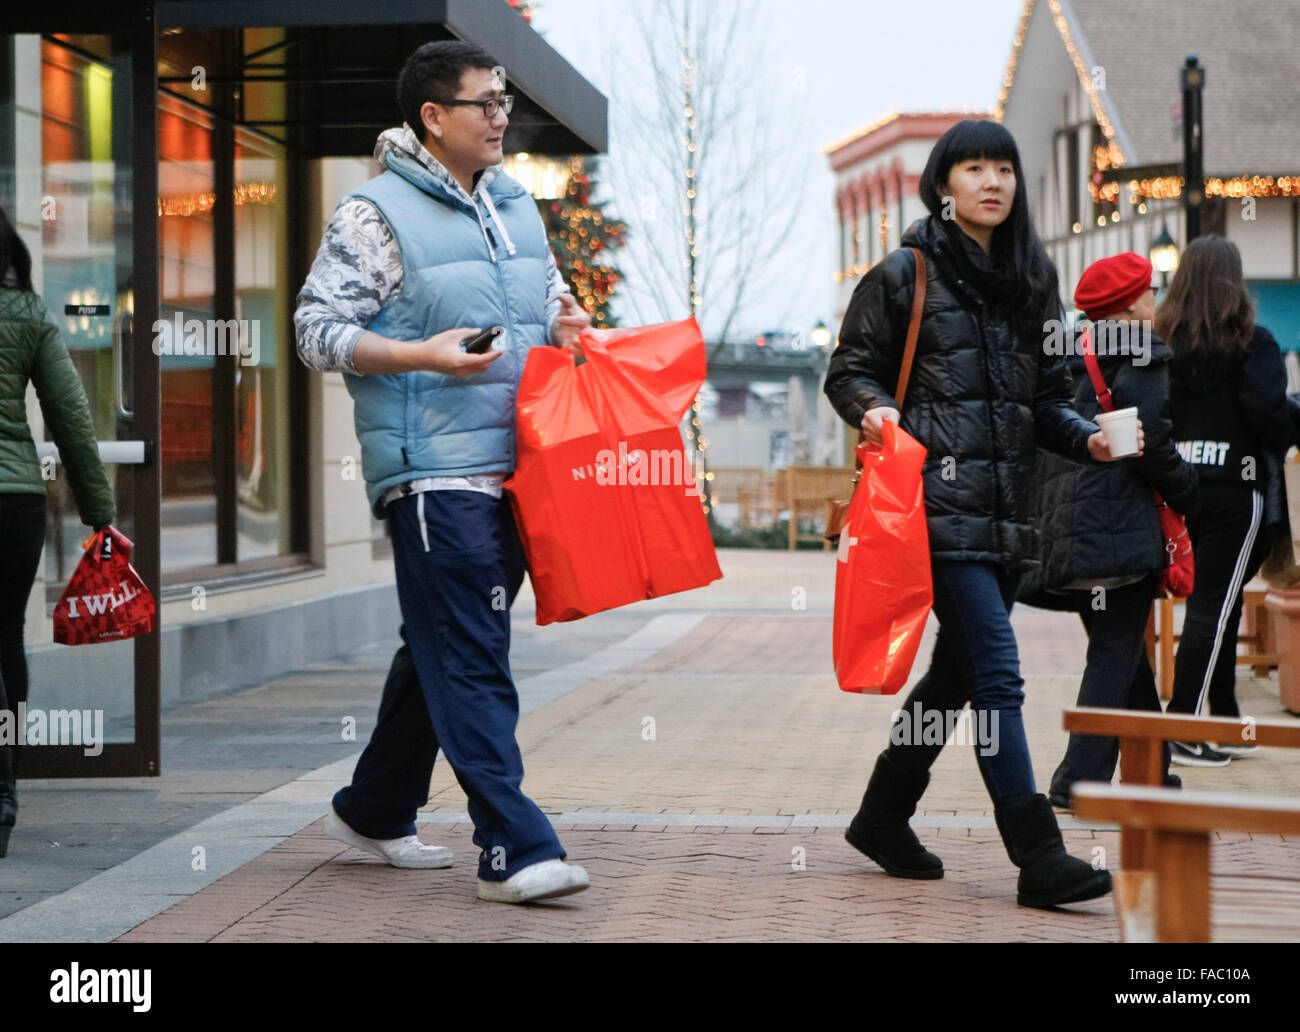 Vancouver, Canada. 26th Dec, 2015. Residents go shopping for bargain goods during Boxing Day sales in Vancouver, - Stock Image